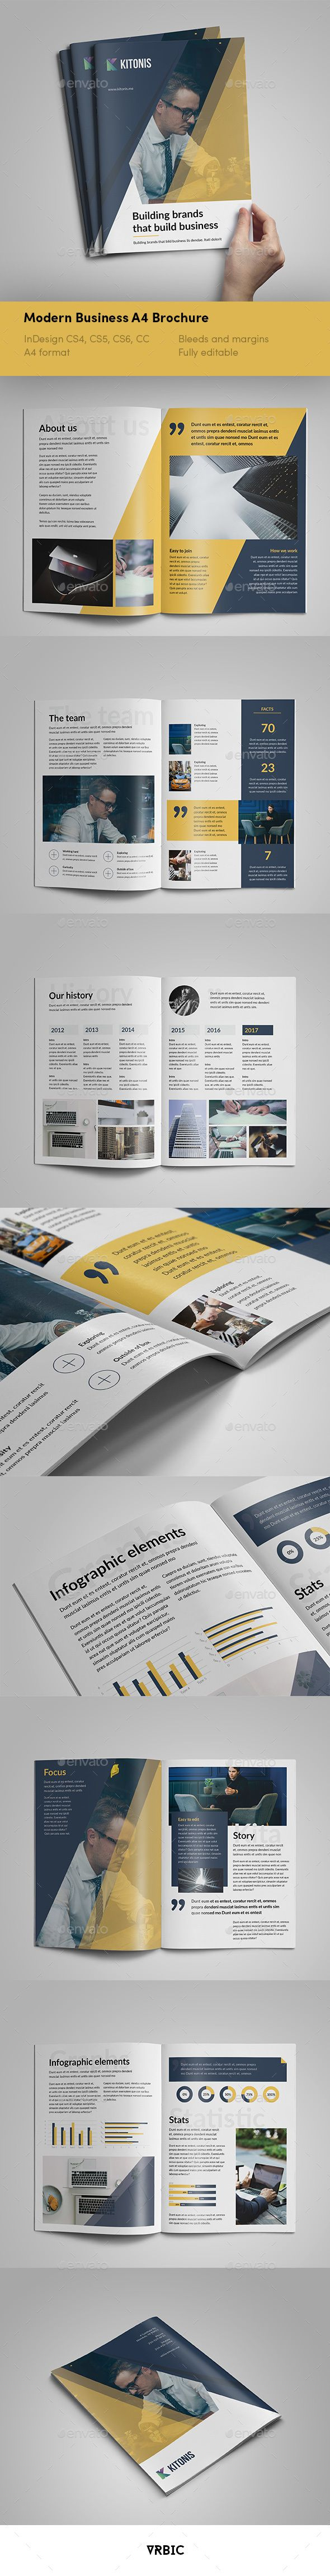 Modern Business A4 Brochure - InDesign Template | Diciembre